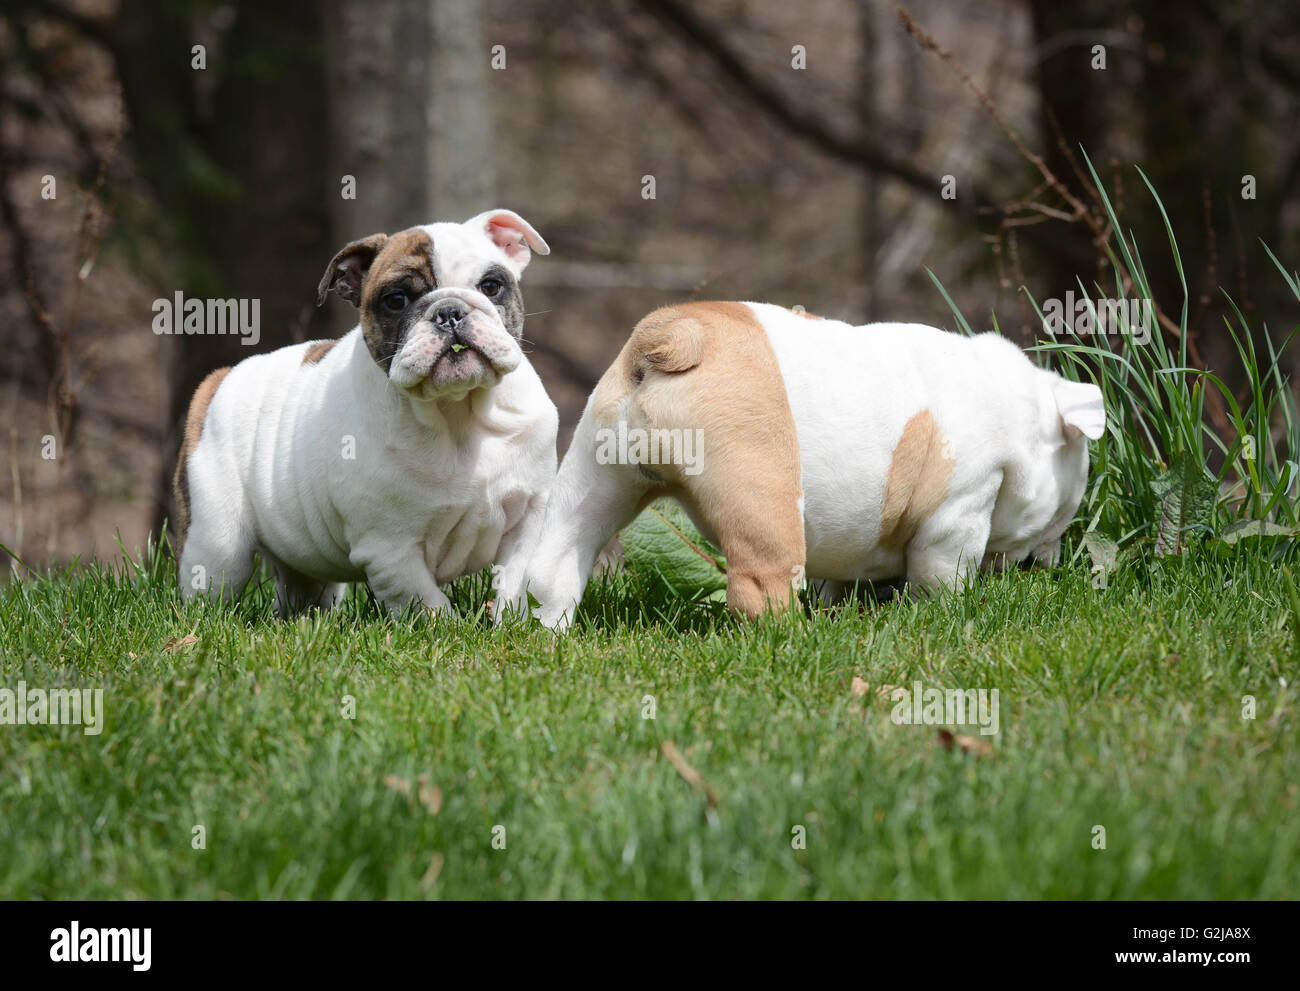 two english bulldog puppies playing outside in the grass - Stock Image